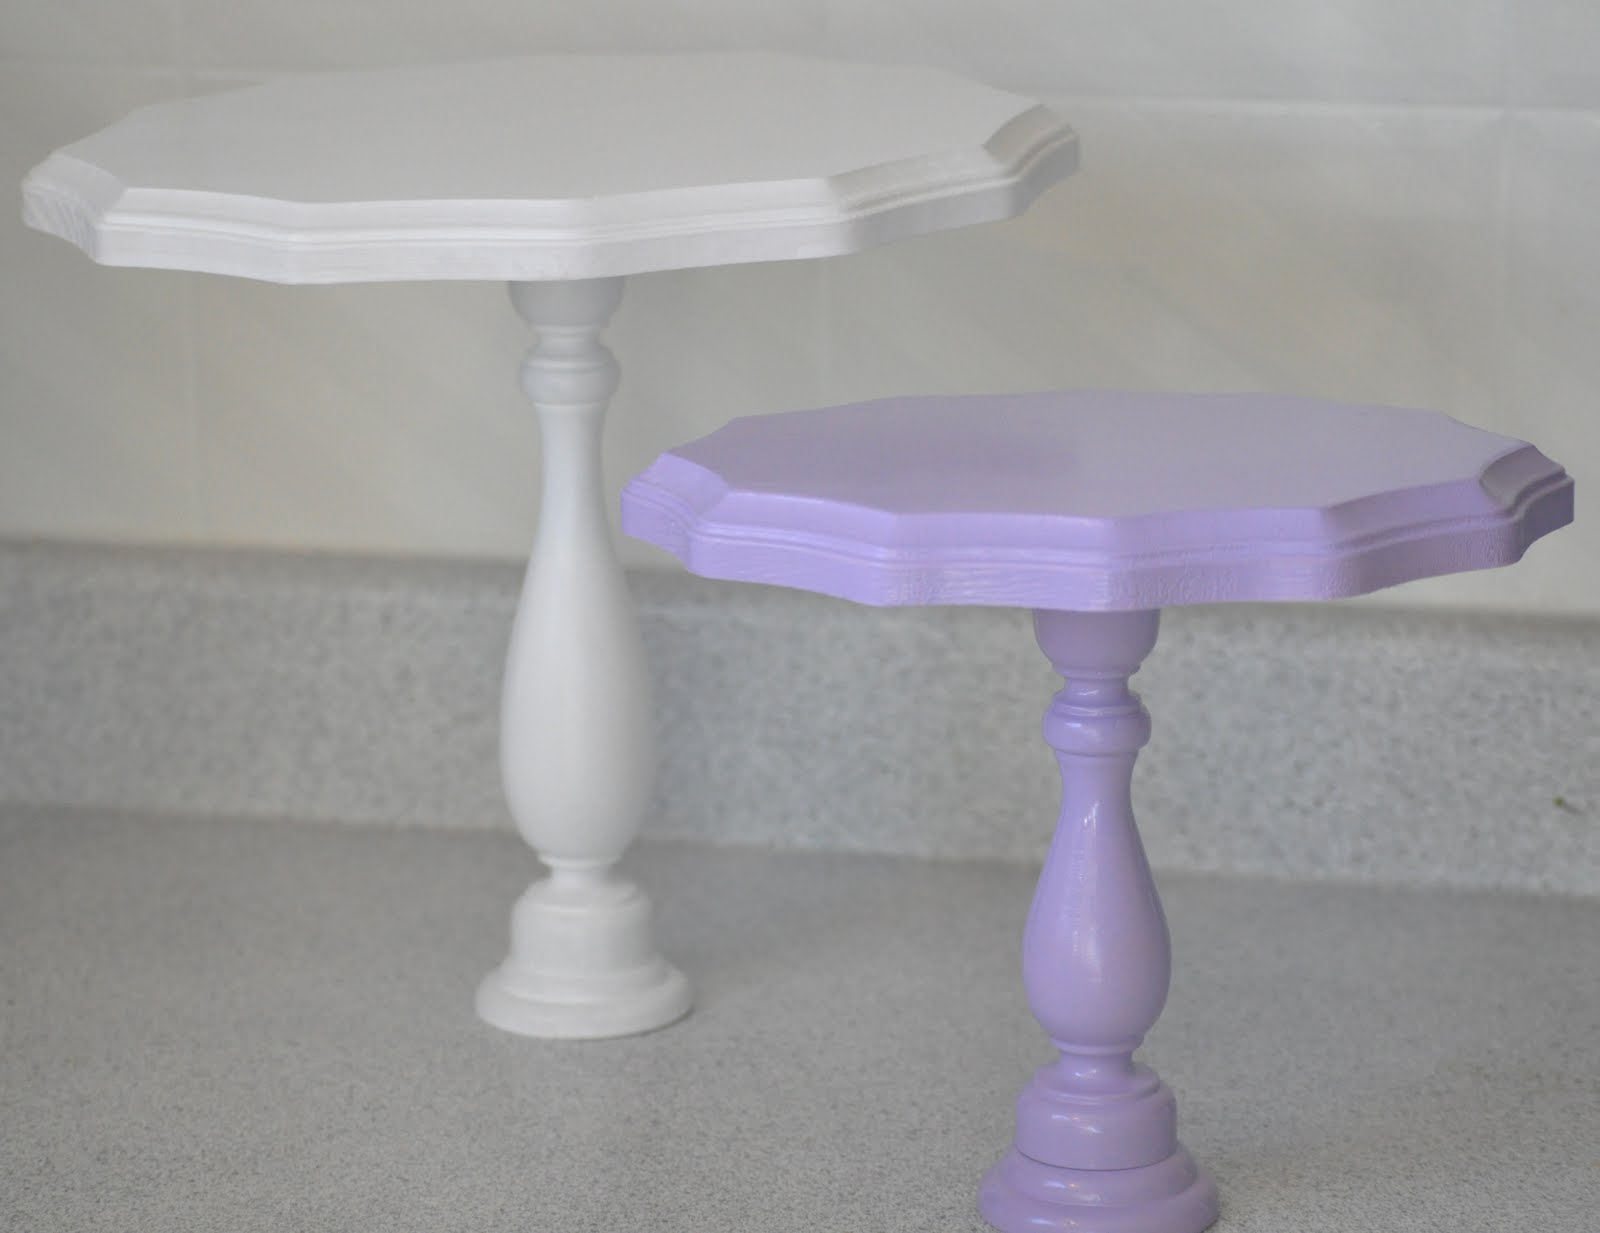 Looking for Wooden cake stand plans [] radha plans idea